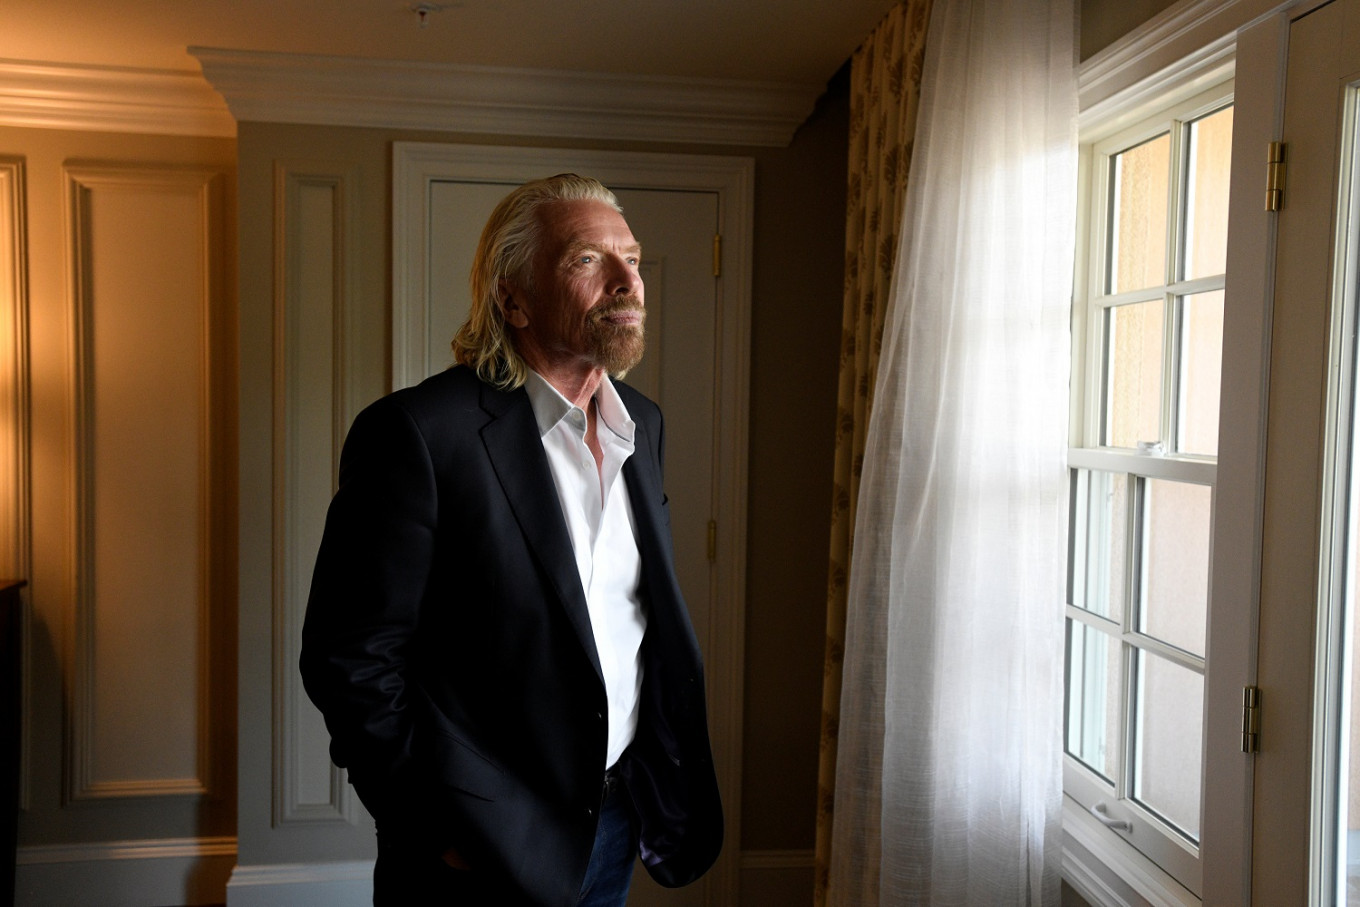 Billionaire Branson urges business to back LGBT+ rights